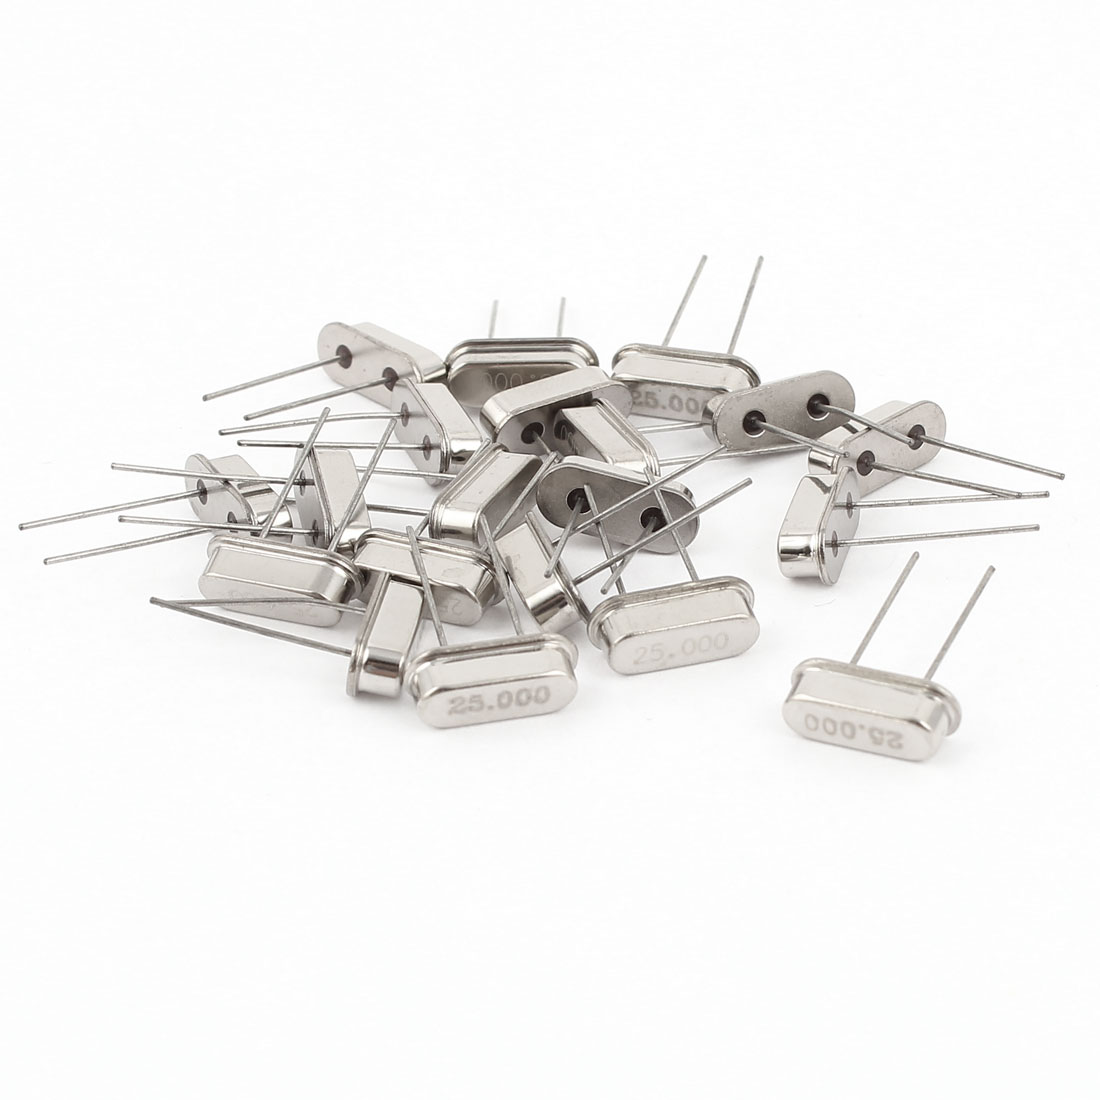 20 Pcs Low Profile 25MHZ 25.000MHZ Quartz Crystal Oscillator HC-49S Replacements